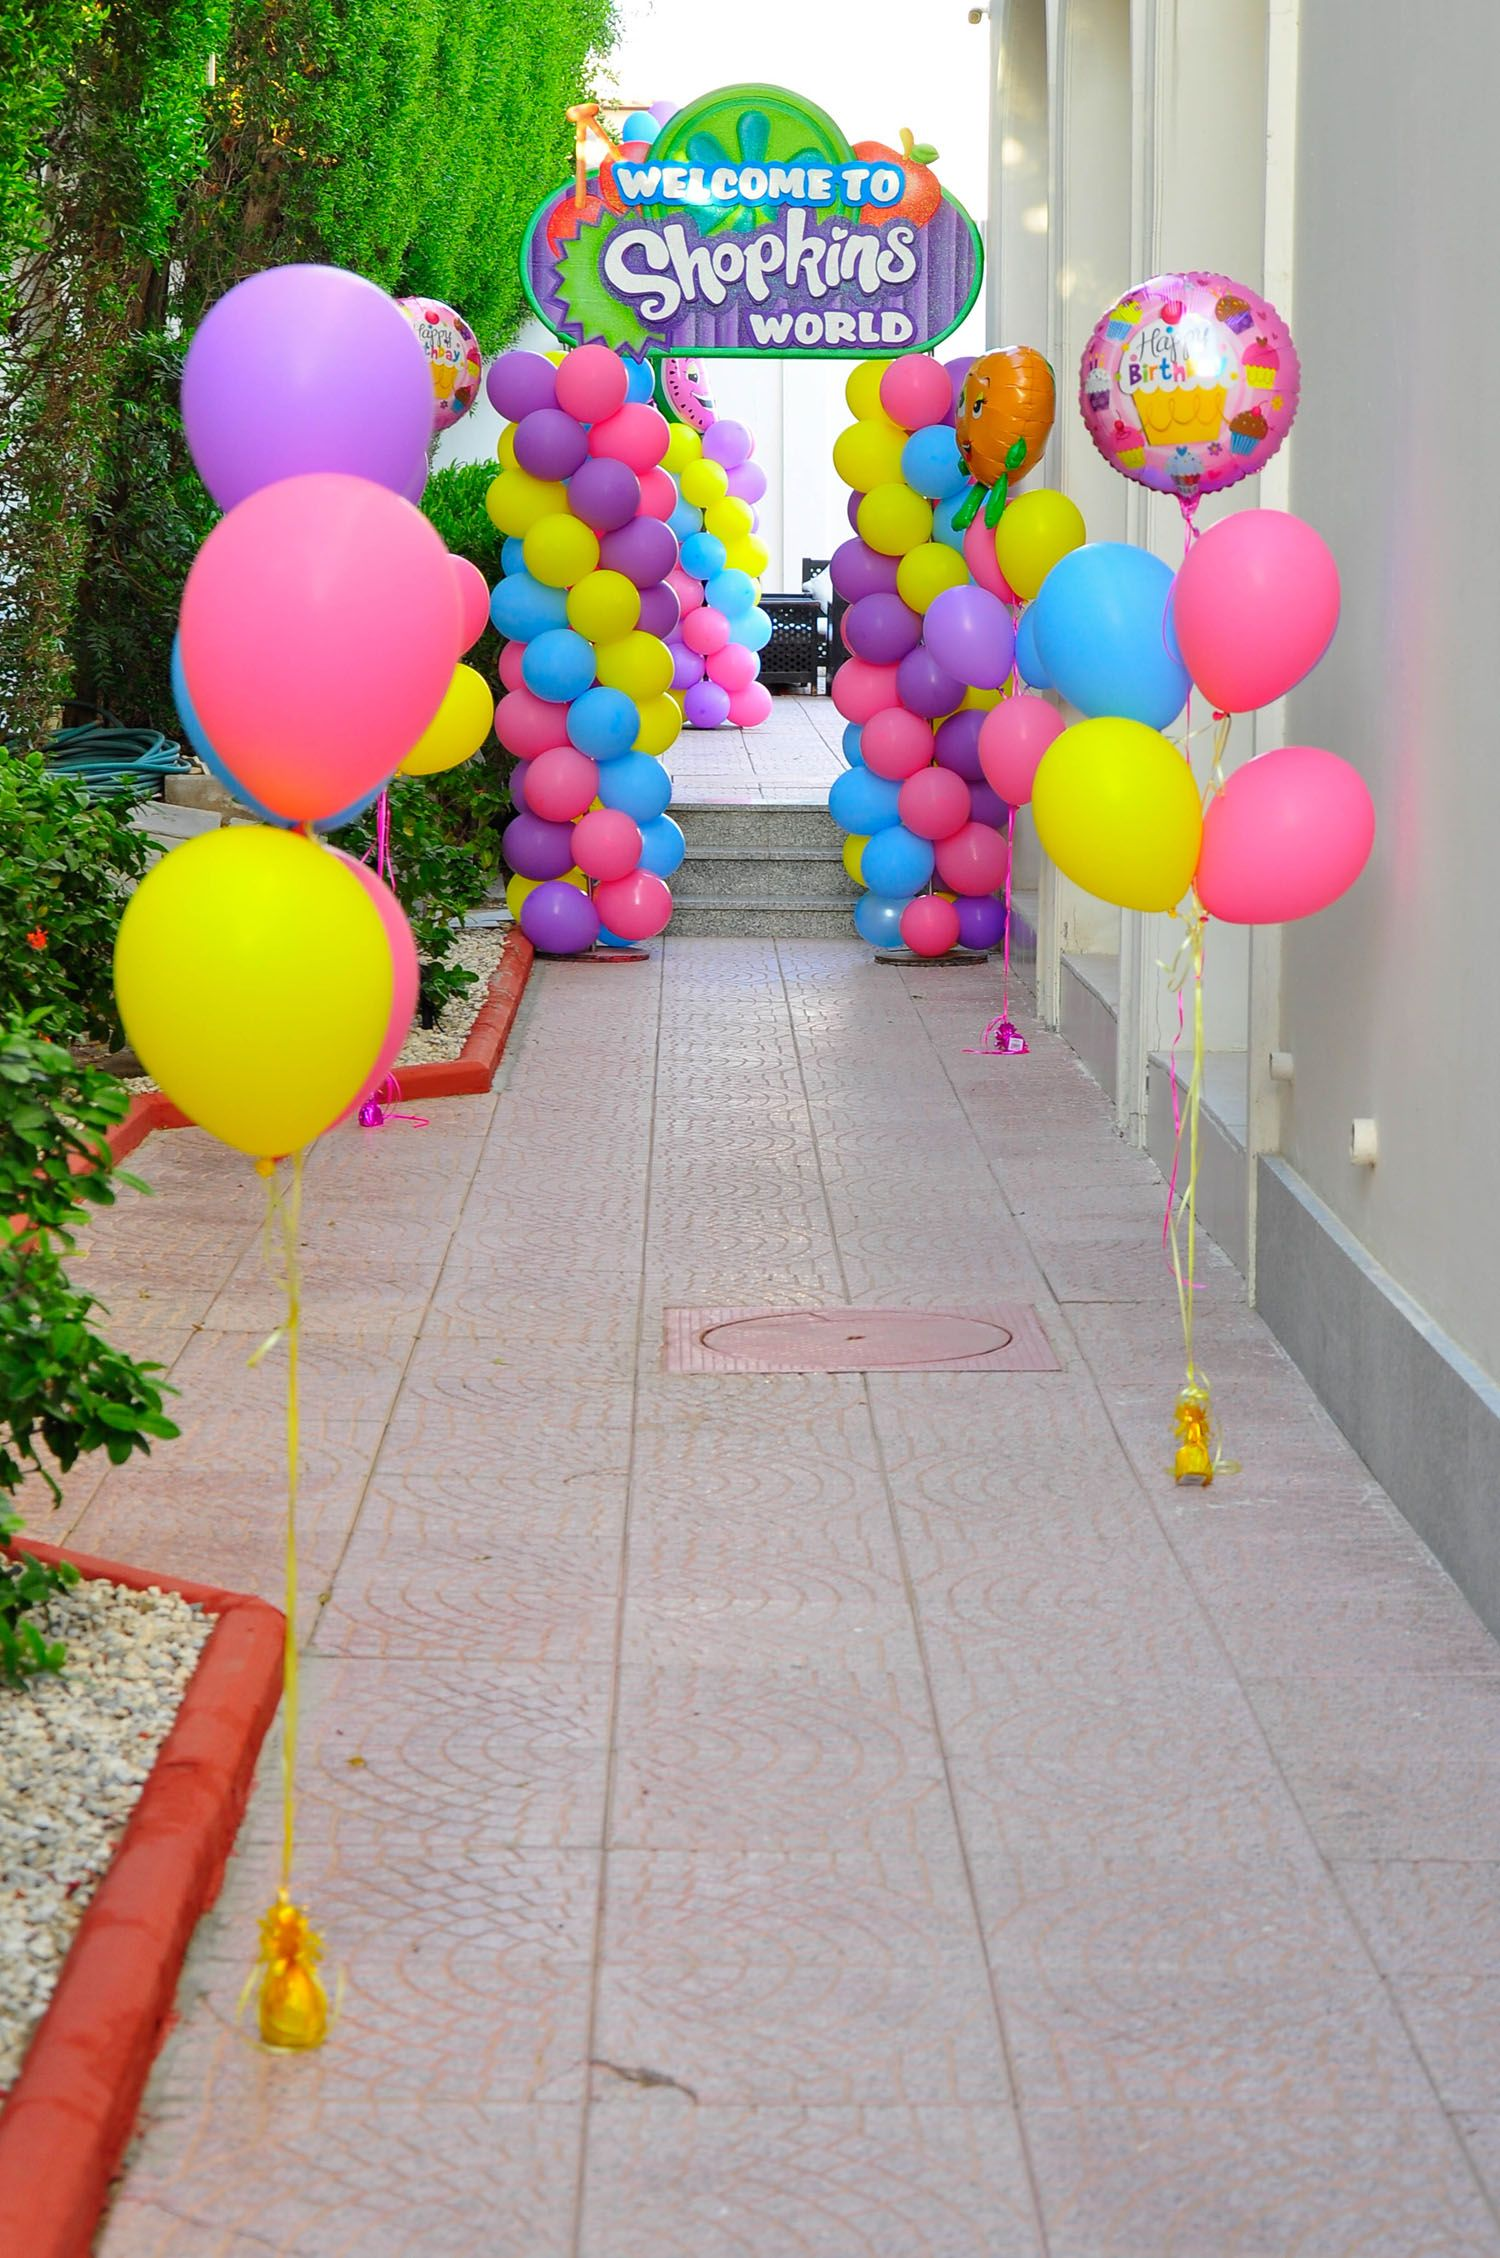 20 Balloon Facebook Banner Pictures And Ideas On Meta Networks